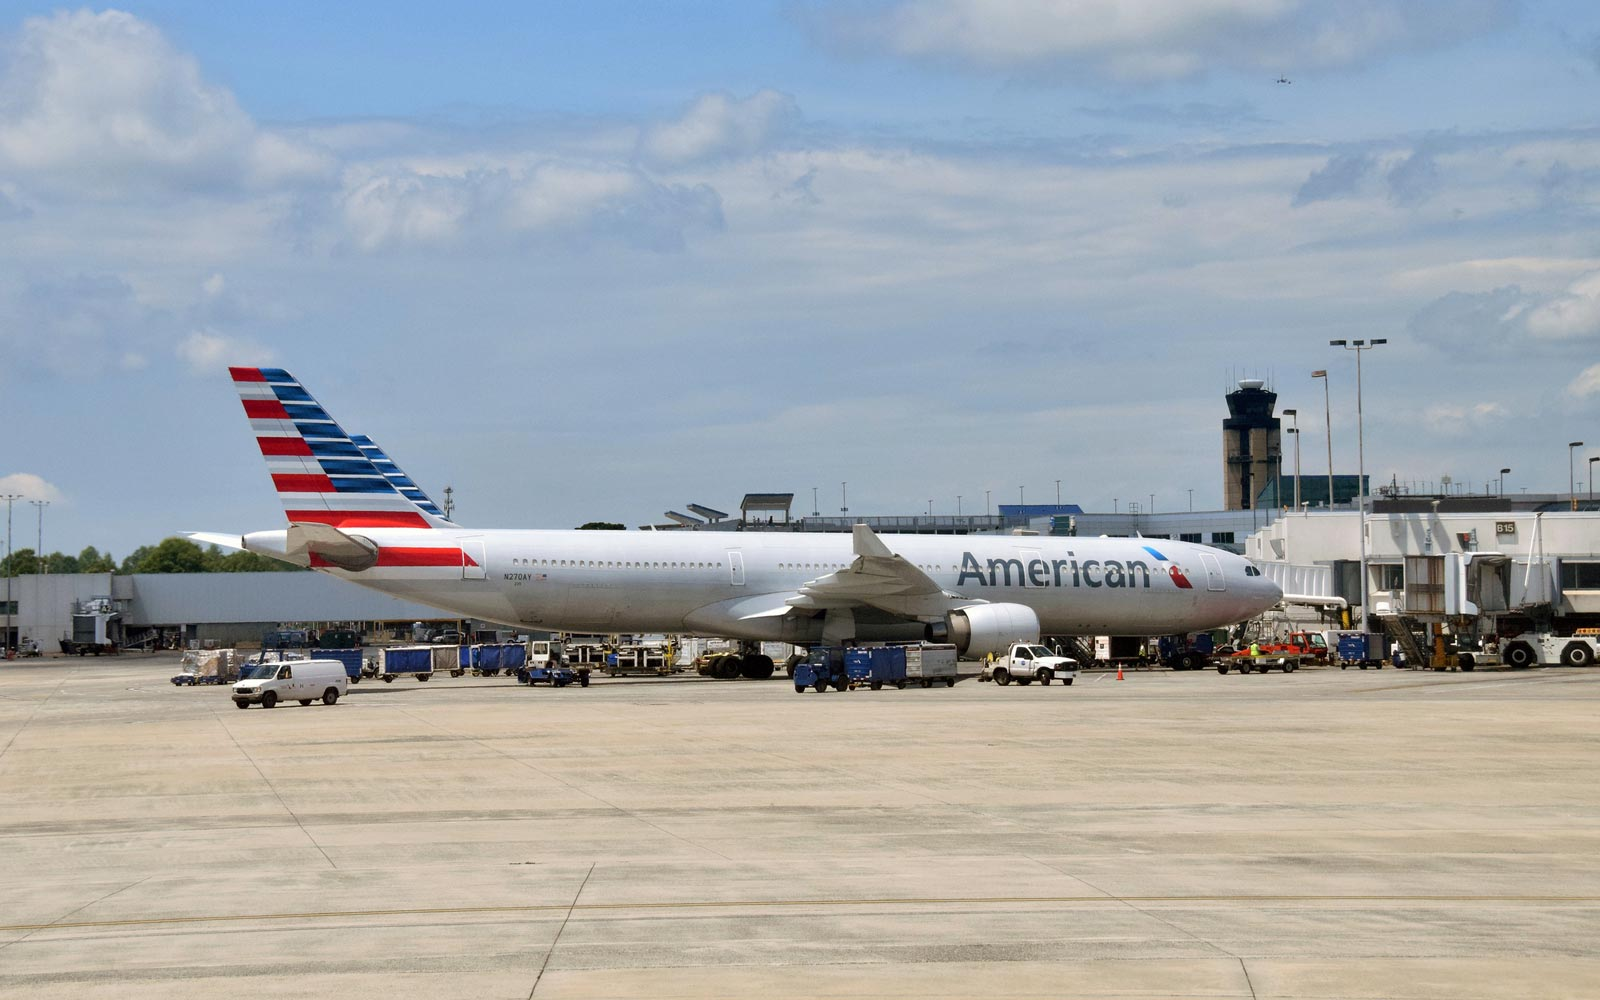 American Airlines plant at Miami Airport